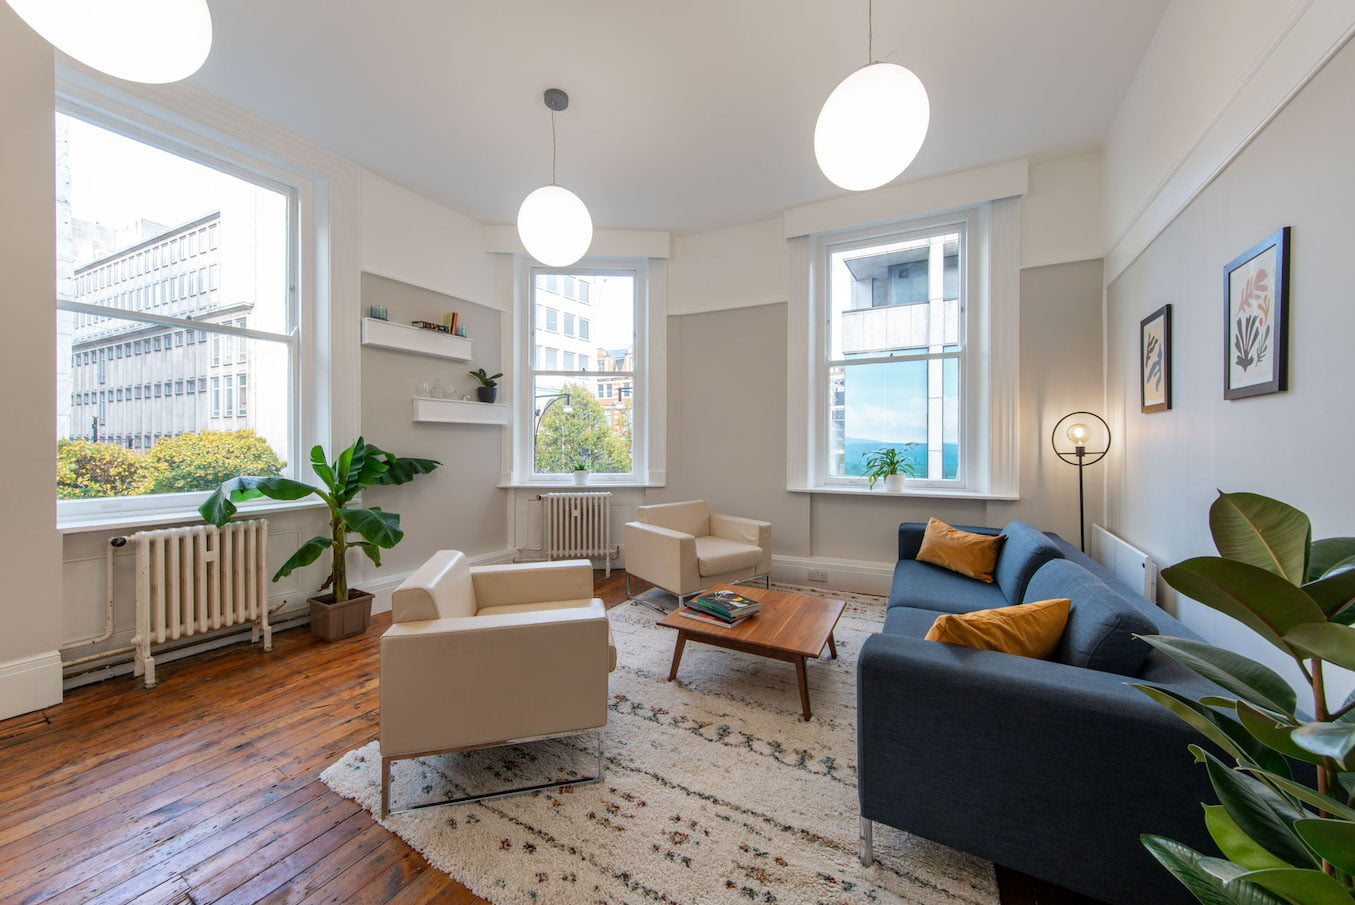 10 of The Best Office Spaces in London